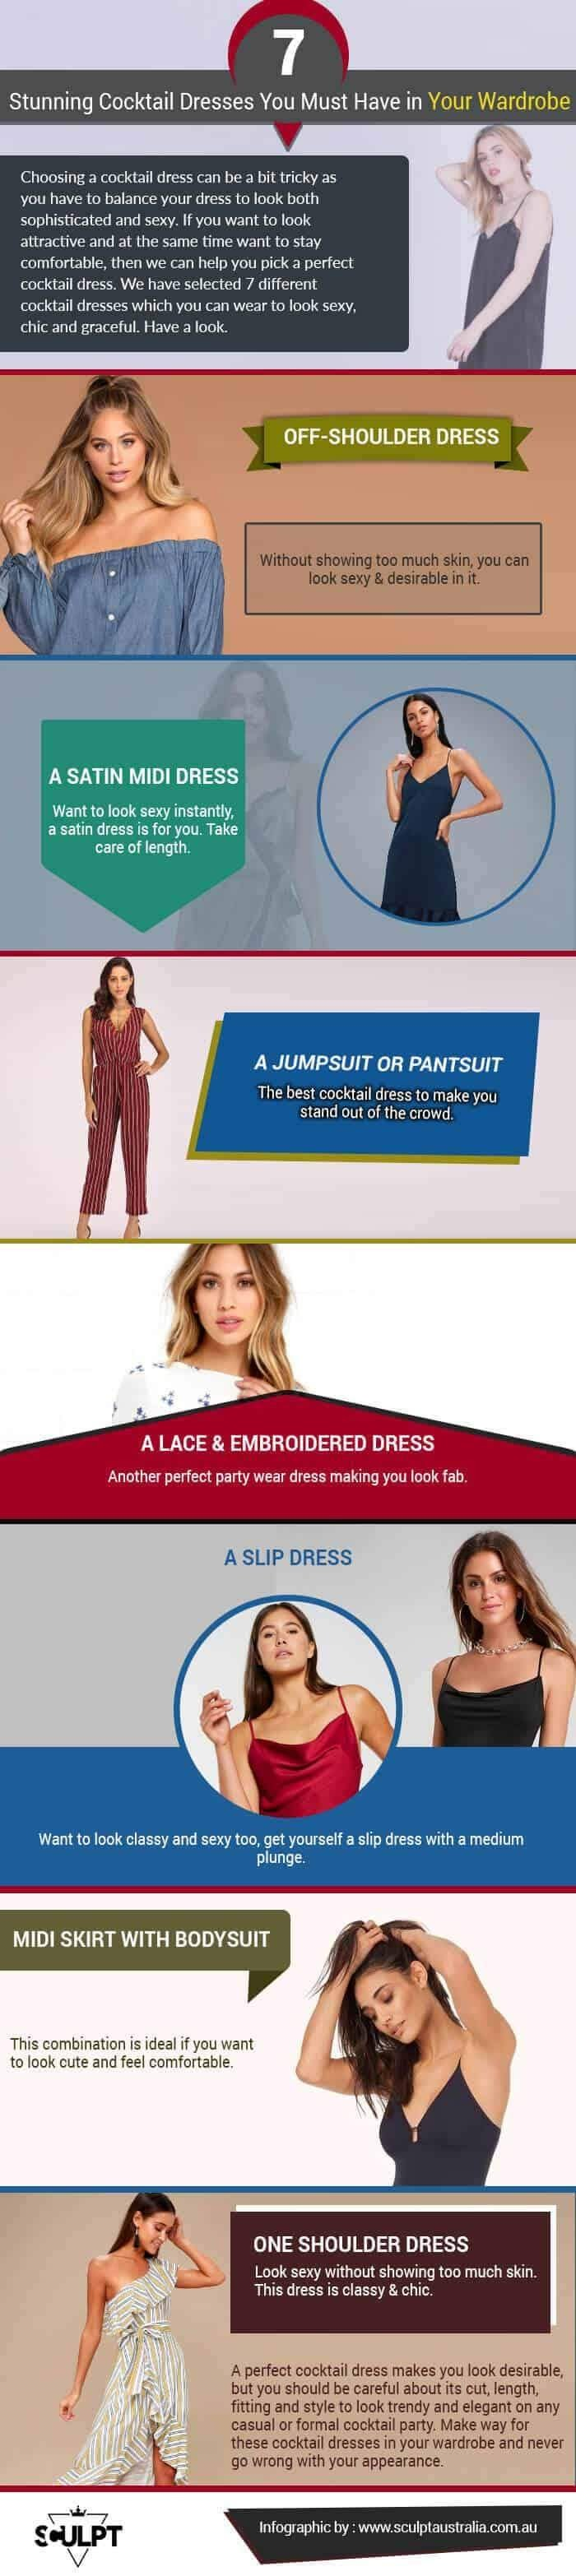 7 Stunning Cocktail Dresses You Must Have In Your Wardrobe #infographic